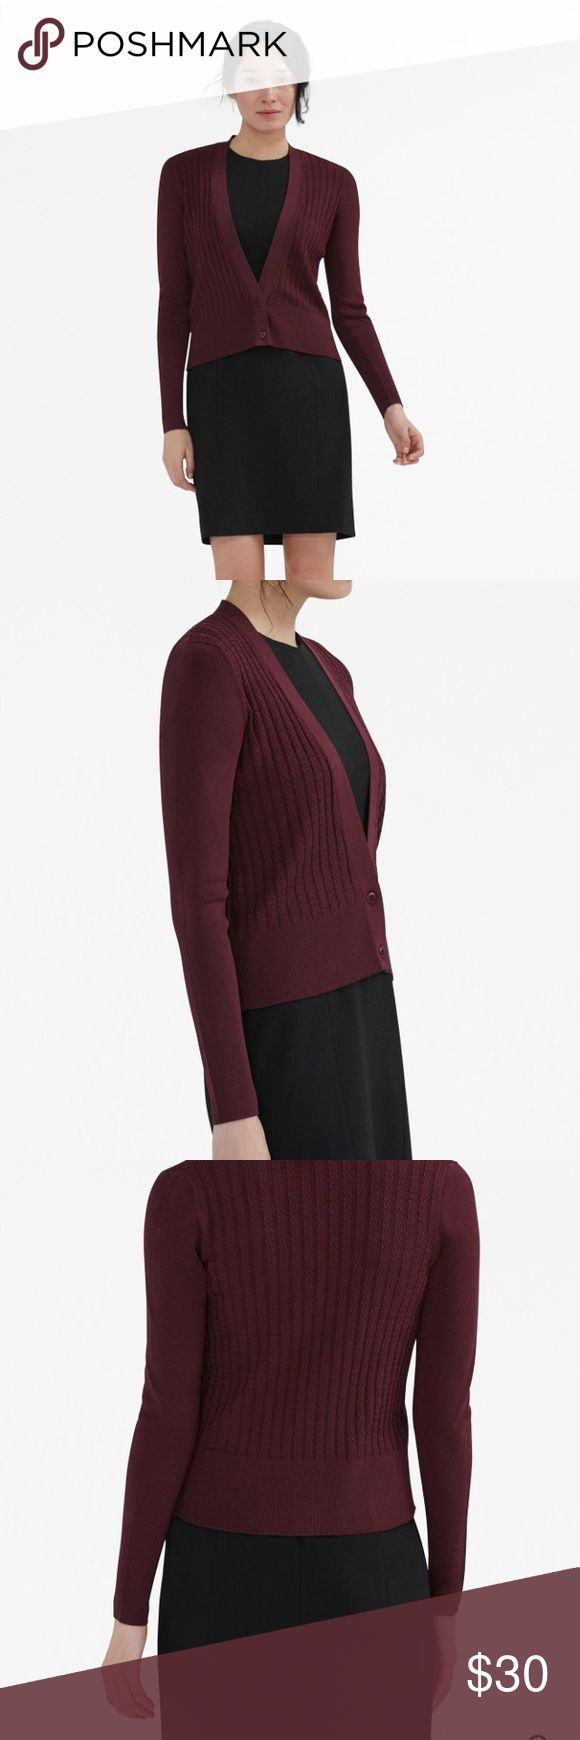 MM.LaFleur  Lange Cardigan | L A sharp take on the classic cardigan, this luxe, tuxedo-inspired piece is knit from a polished yarn in a dense, mini-cable stitch pattern | The cropped length is designed to hit at the true waist, while a low-cut V-neck shows off your favorite power dress | Italian Fabric | Burgundy | New with tags | Bundle 2+ items + receive 10% off MM.LaFleur  Sweaters Cardigans